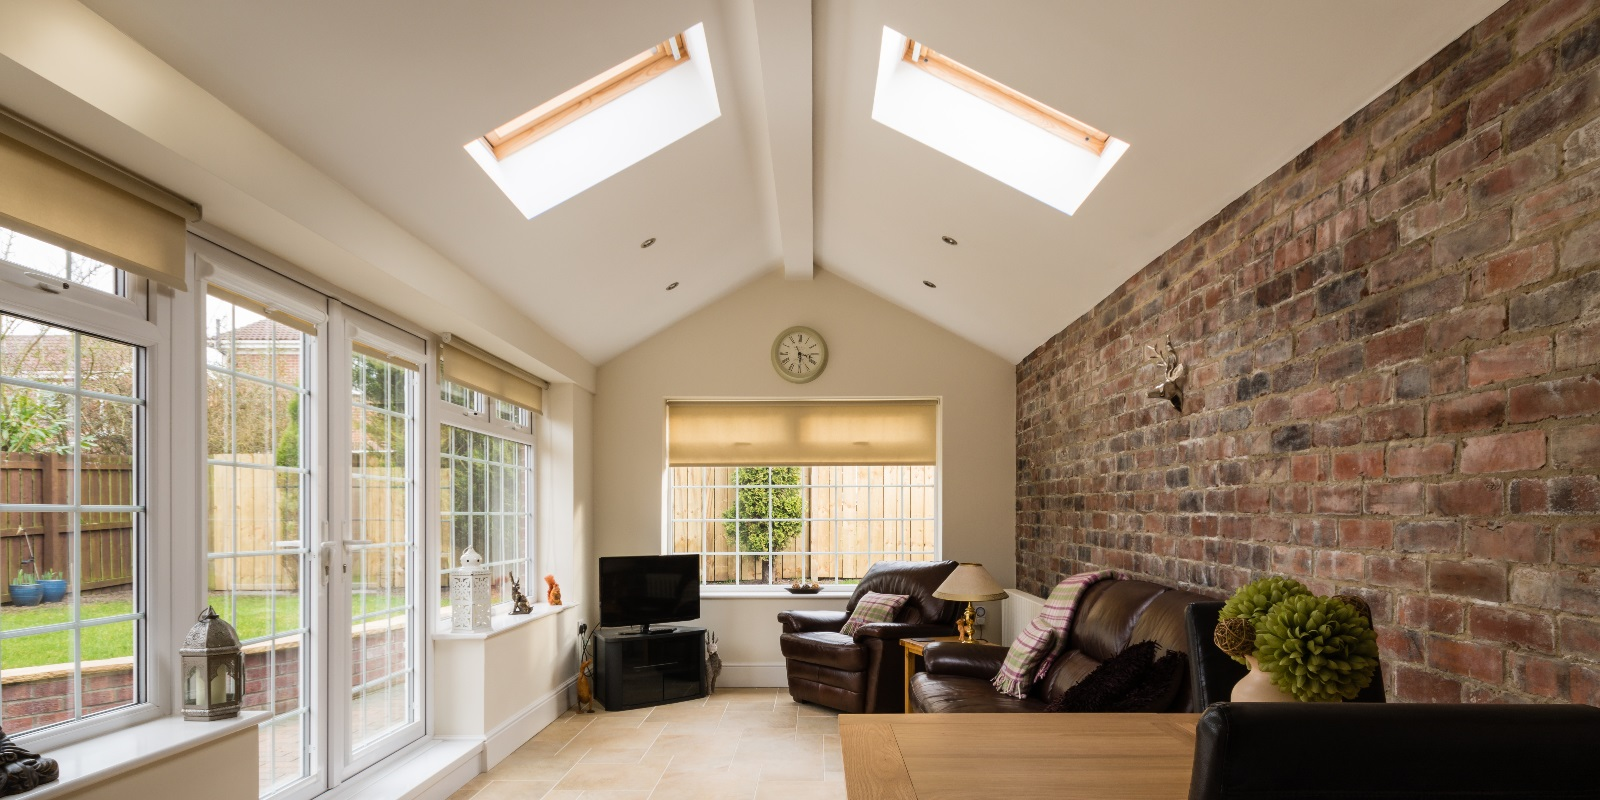 Extensions & building services, Surrey